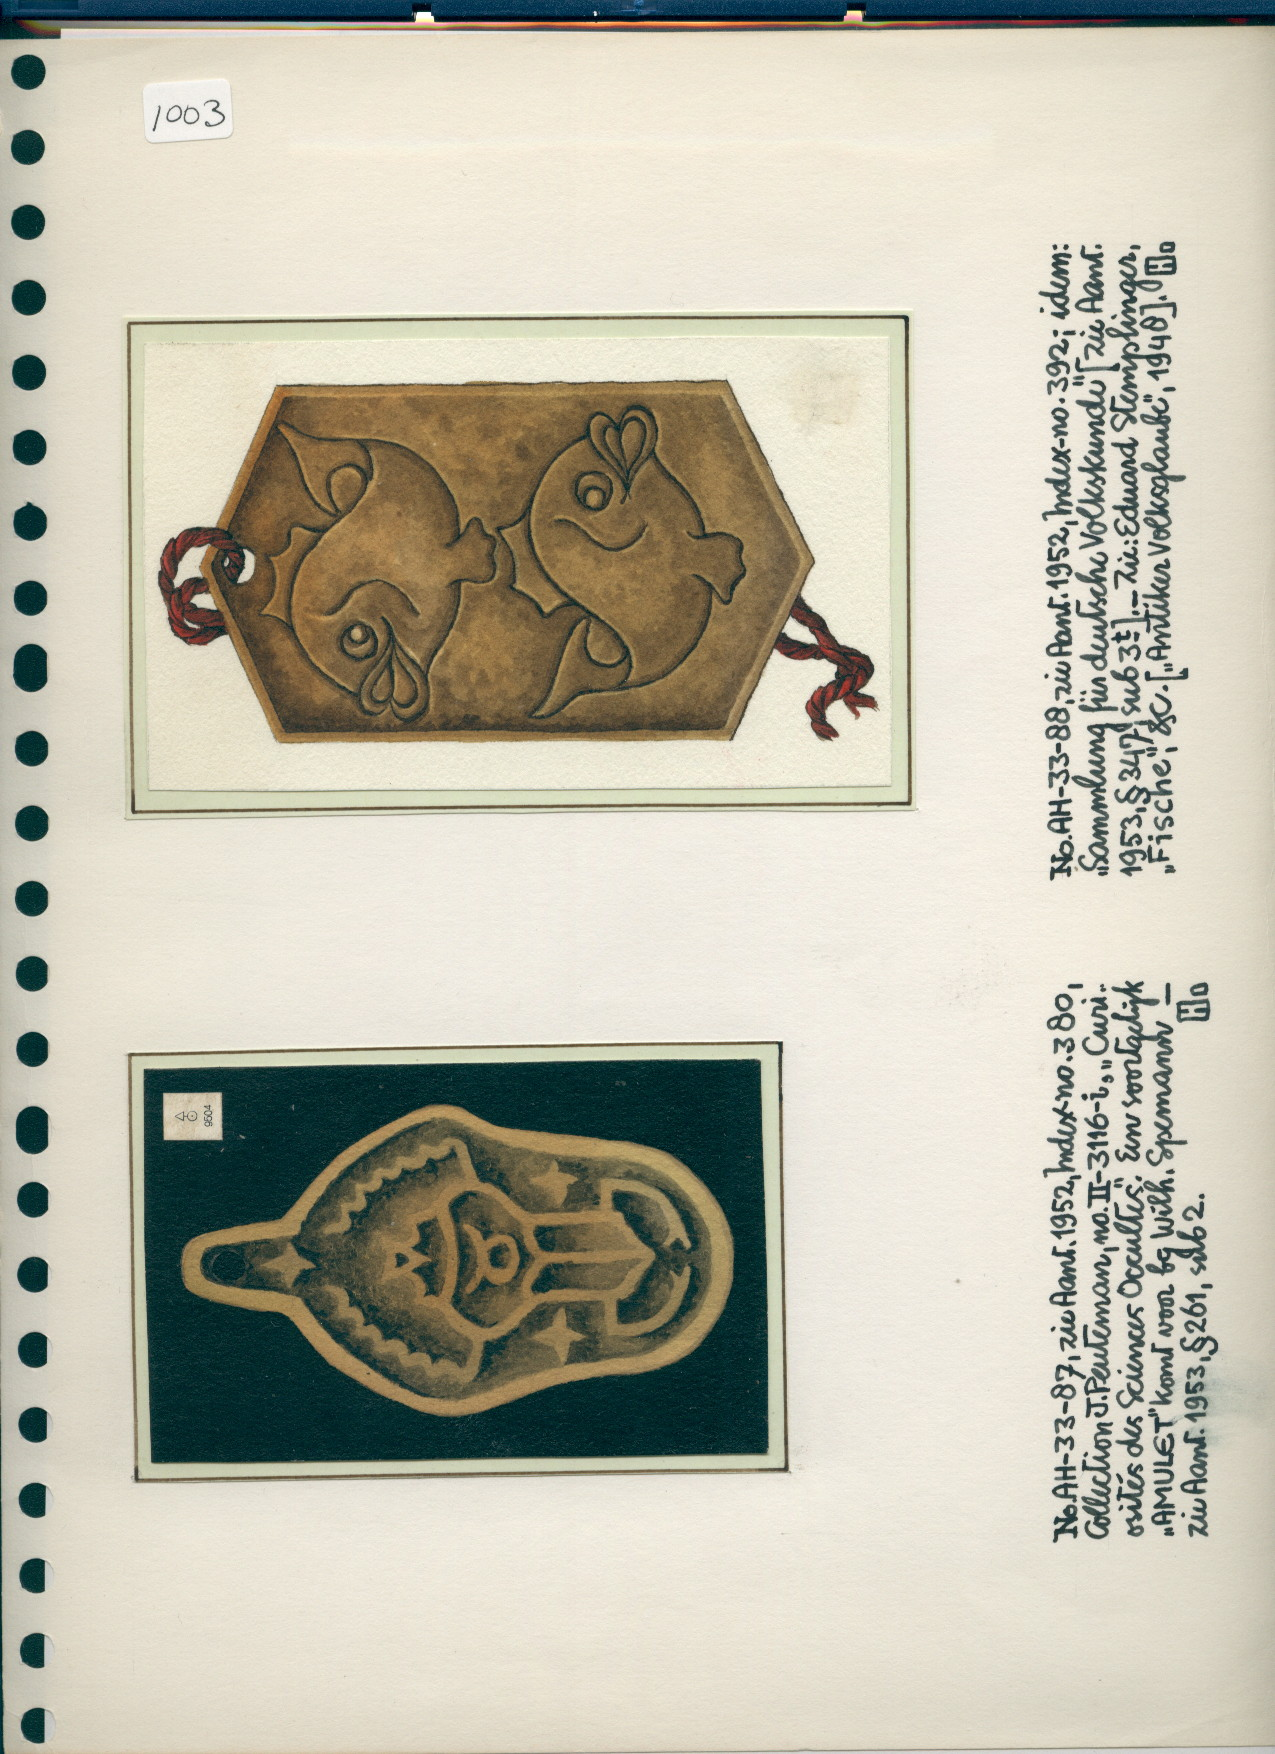 R/7/1003 - 2 prints of amulets, one with scarab, one with fish